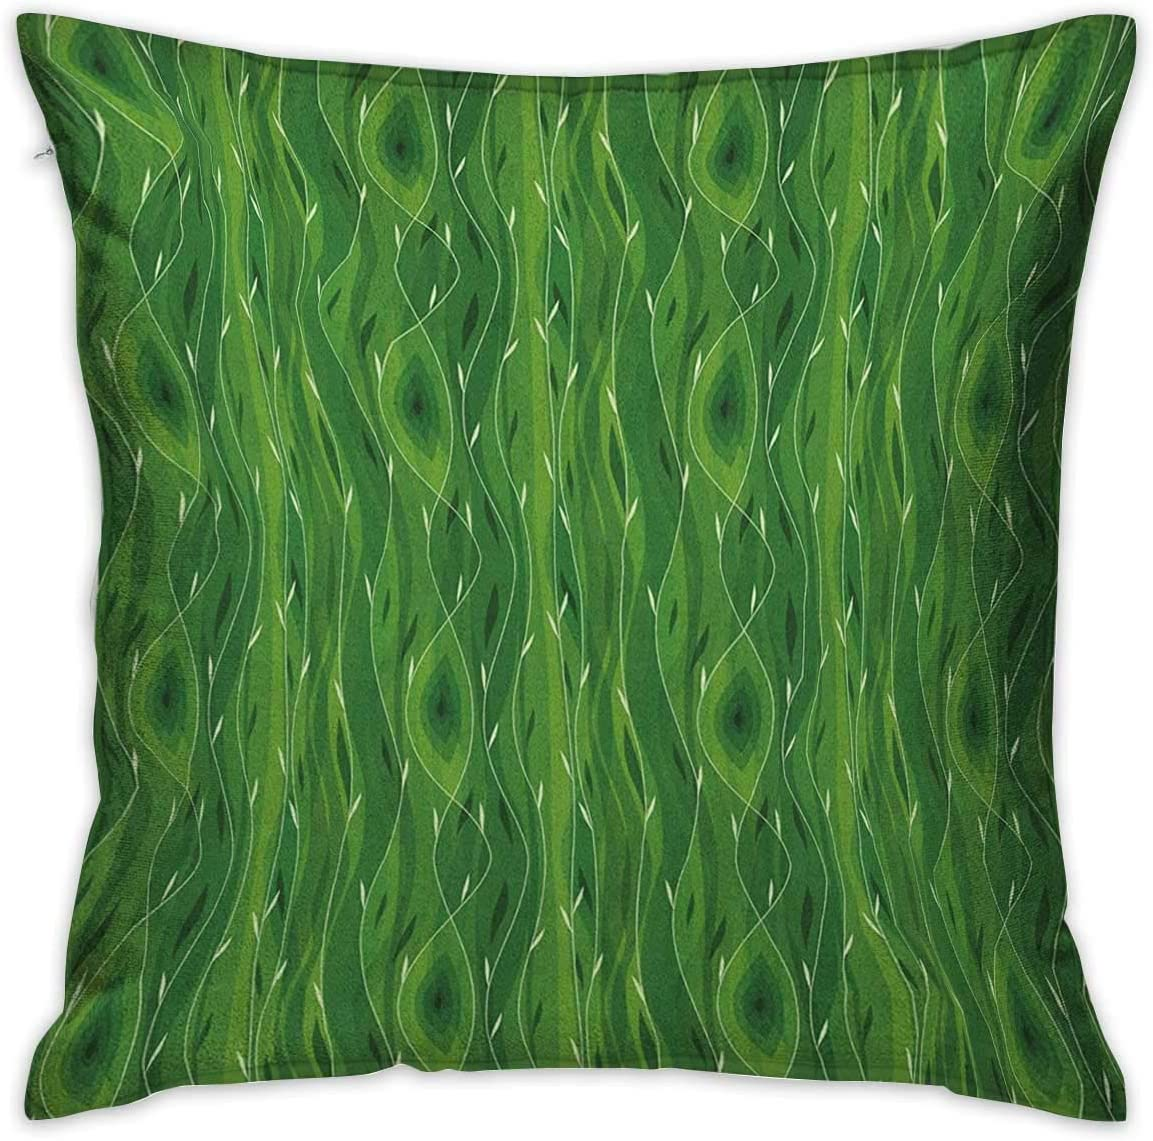 Green Square Standard Pillowcase Retro Spring Freshness Themed Abstract Leaf Design Vertical Wavy Twigs Fern Green Pale Green Cushion Cases Pillowcases for Sofa Bedroom Car W17.7 x L17.7